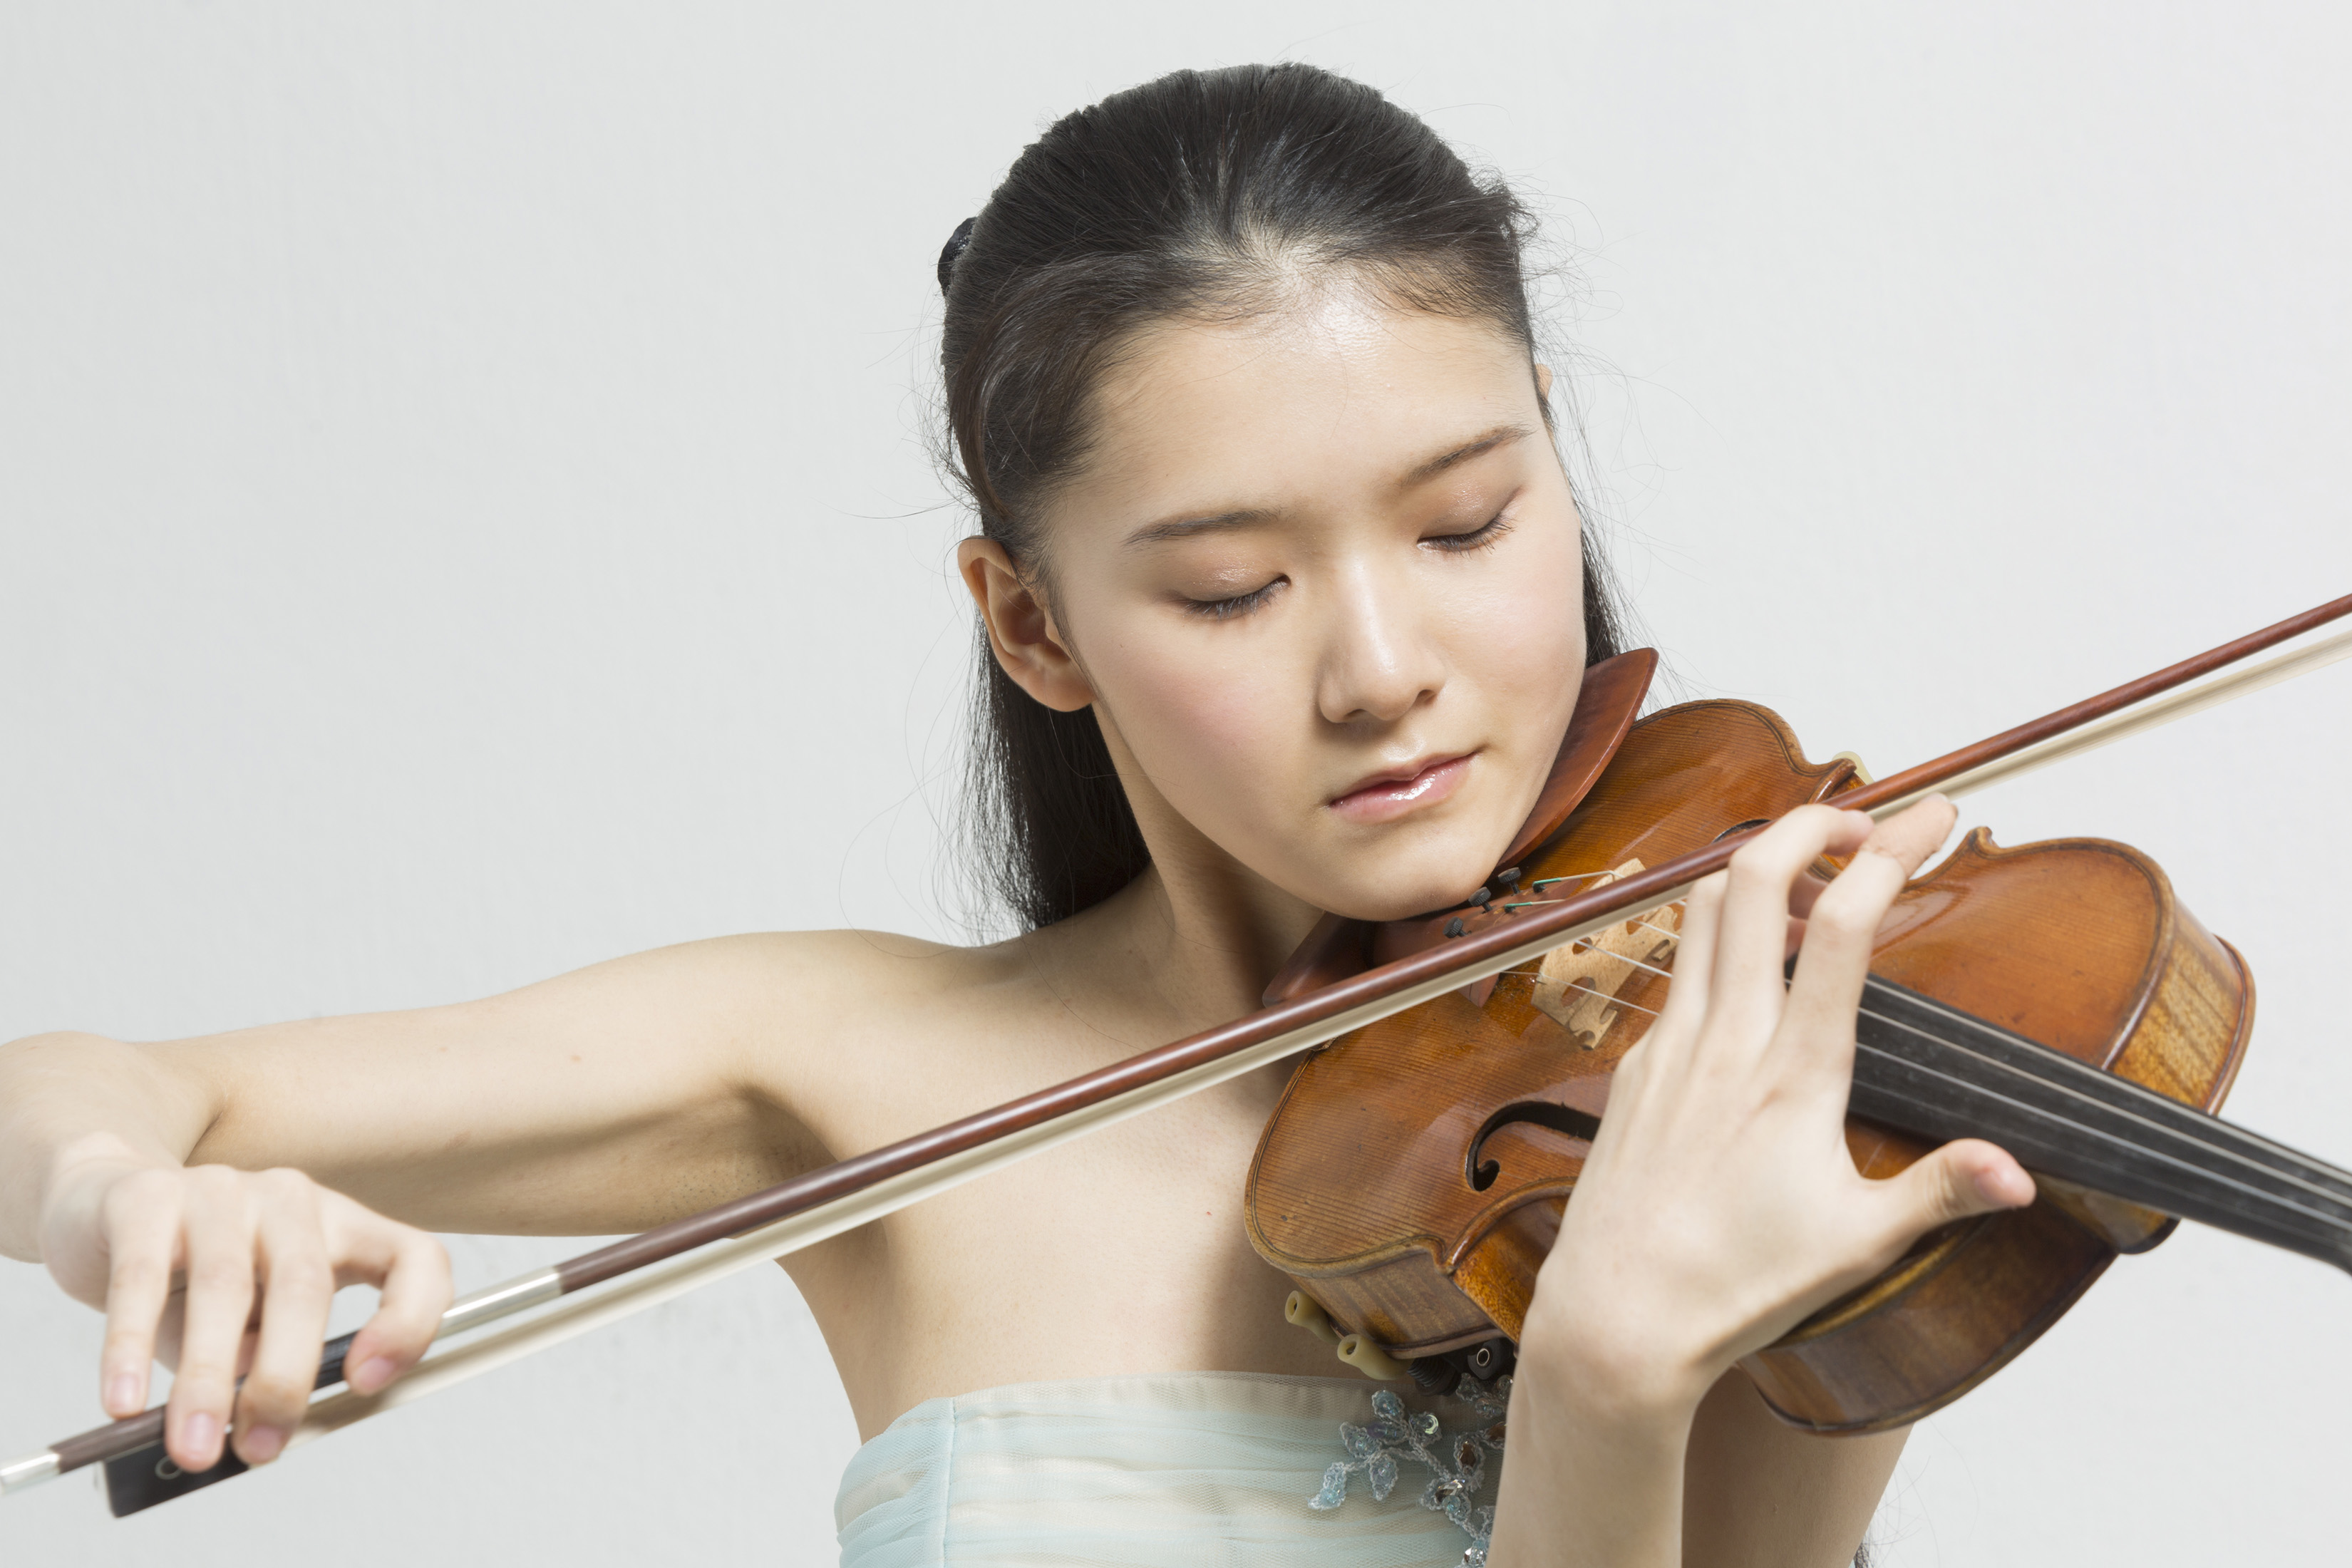 Moné Hattori will be on tour with the Japan Century Symphony Orchestra 3